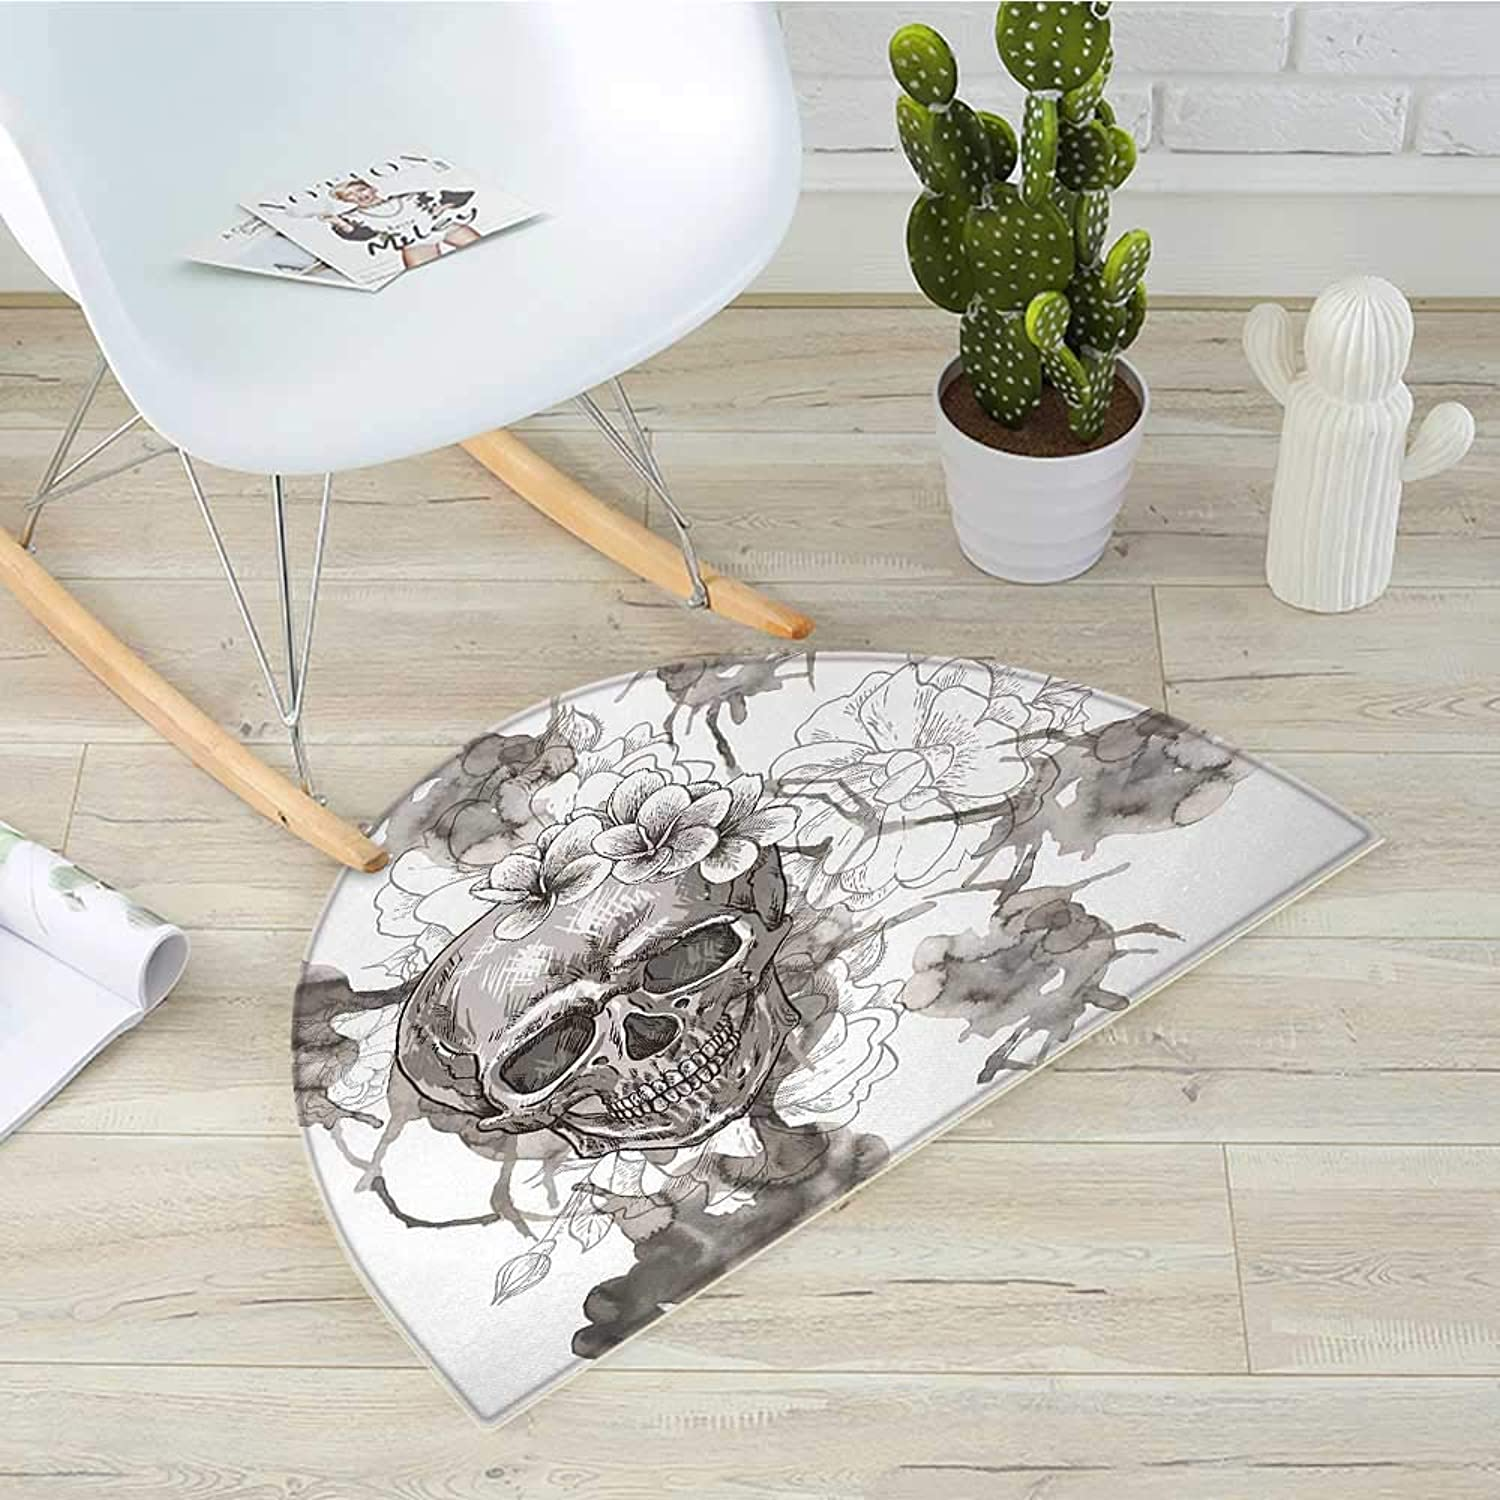 Day of The Dead Semicircular CushionPainting Skull Flowers Dia de Los Muertos Festive Designed Print Entry Door Mat H 39.3  xD 59  Dimgrey and White